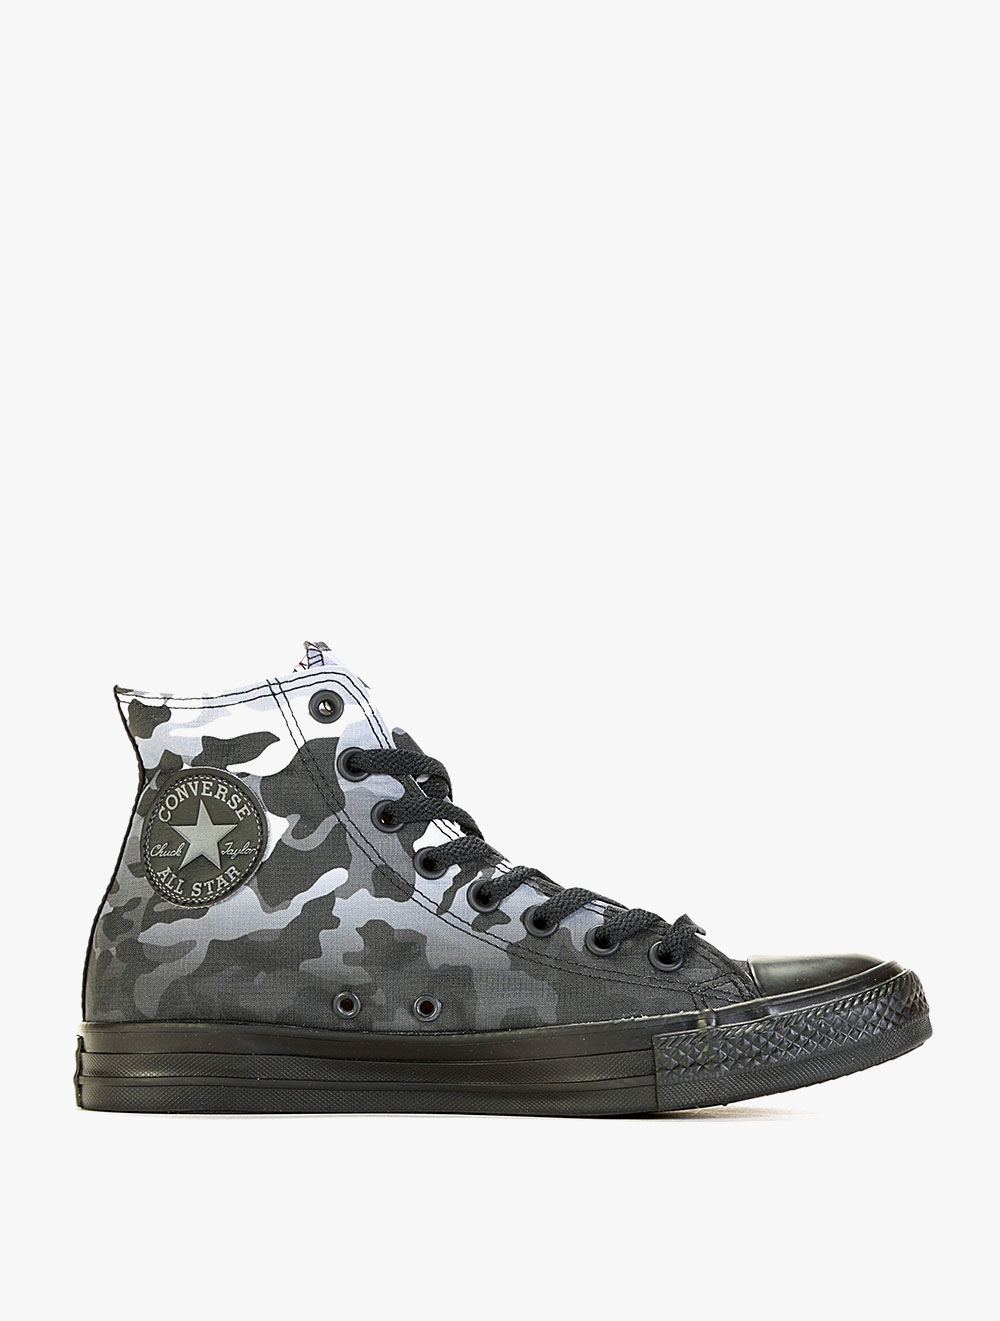 Men's Camo Hi Star Sneakers Taylor Chuck All Gradient Shoes 0wOP8kn